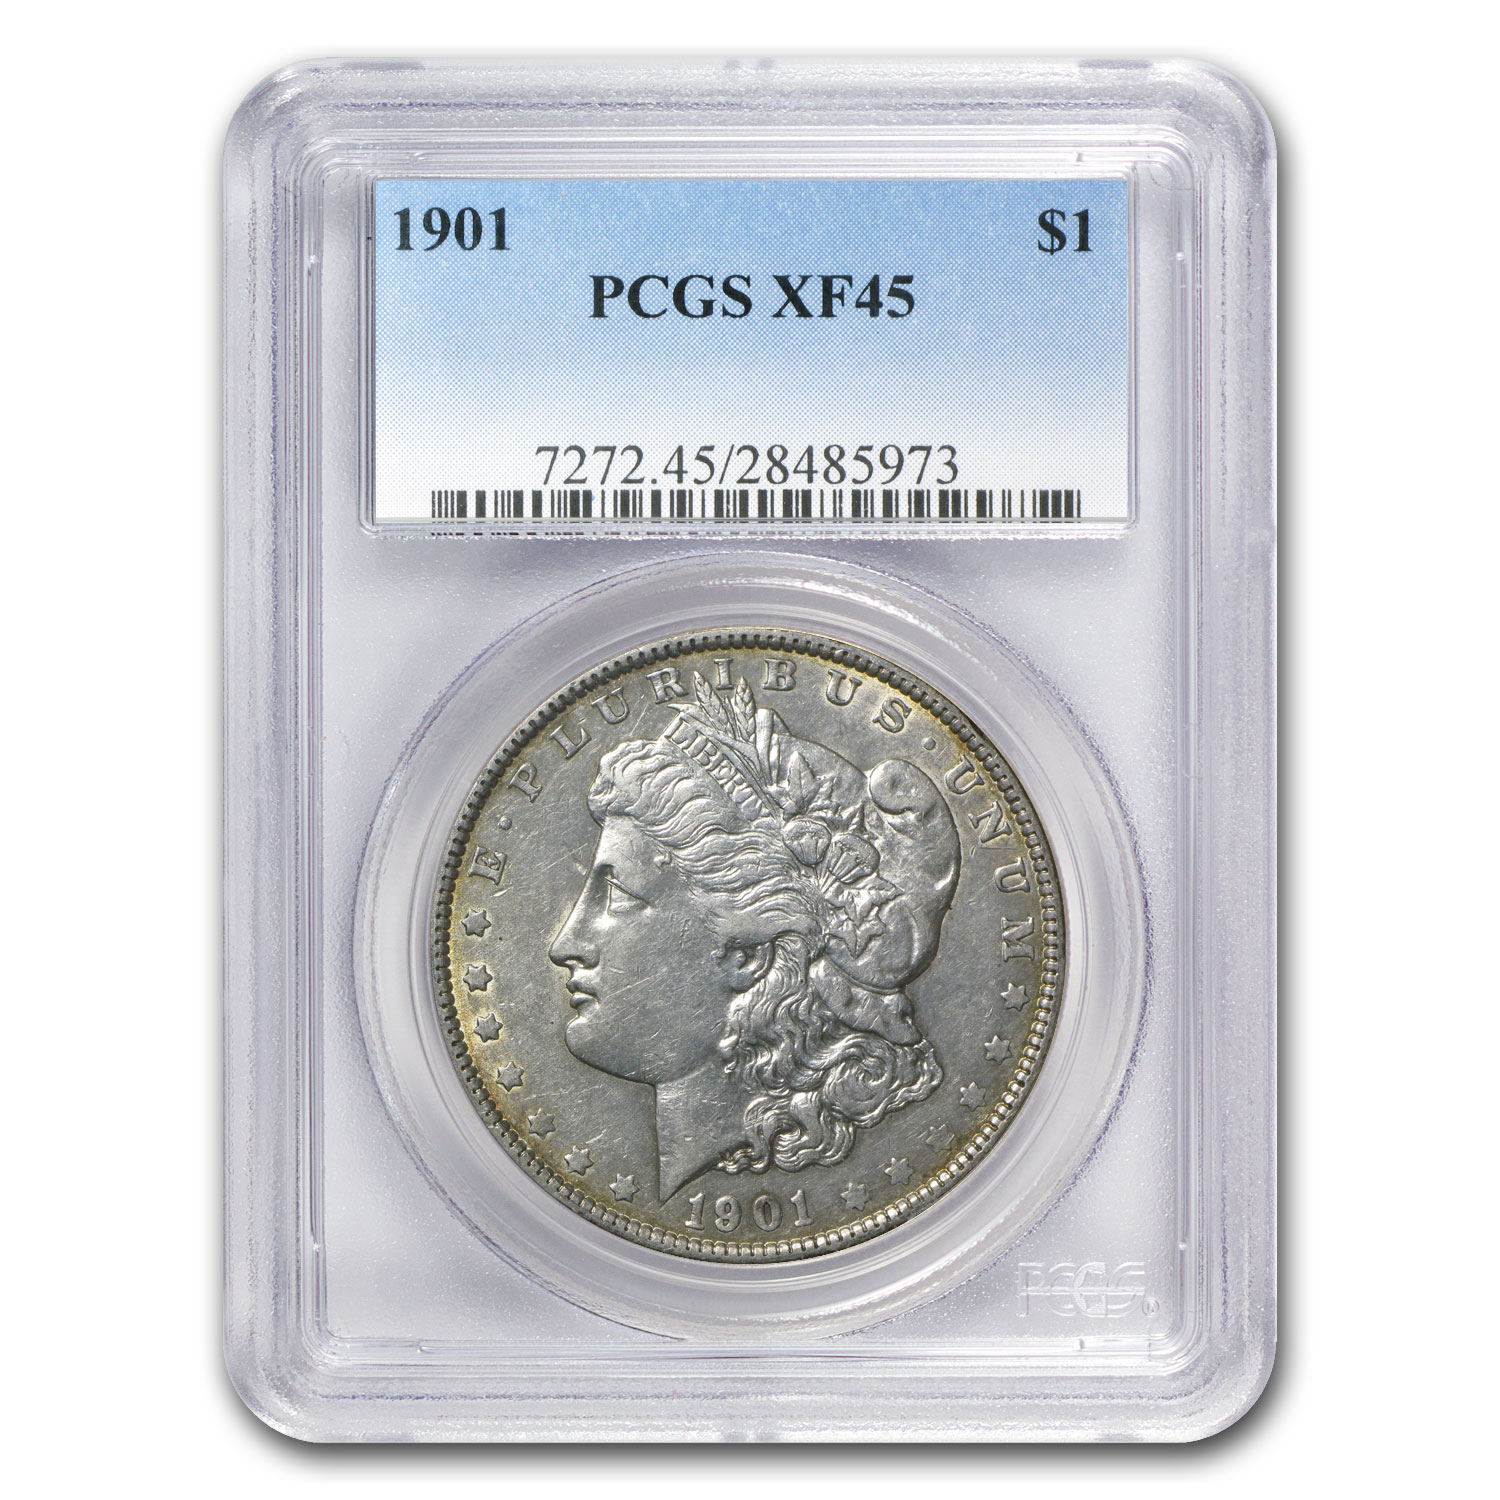 1901 Morgan Dollar XF-45 PCGS